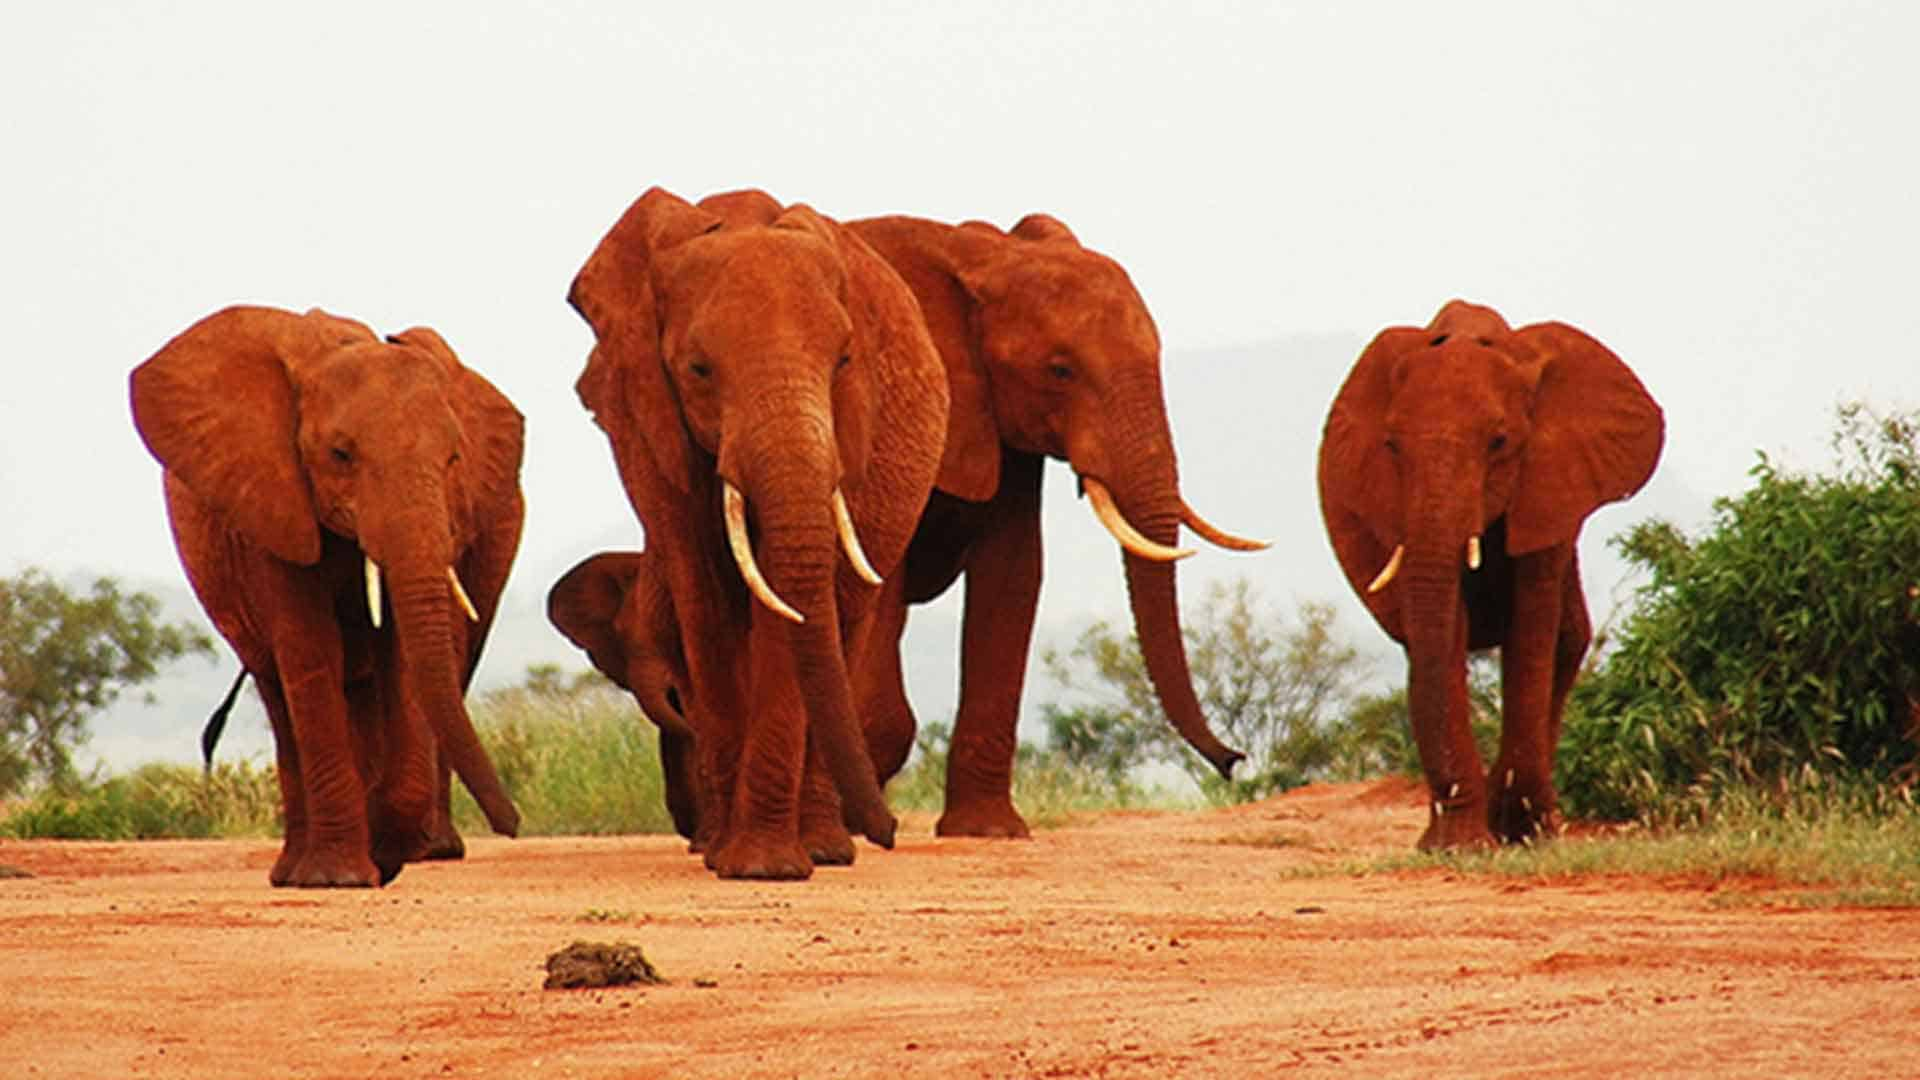 a line of elephants walk down the road on a safari trips to africa vacation